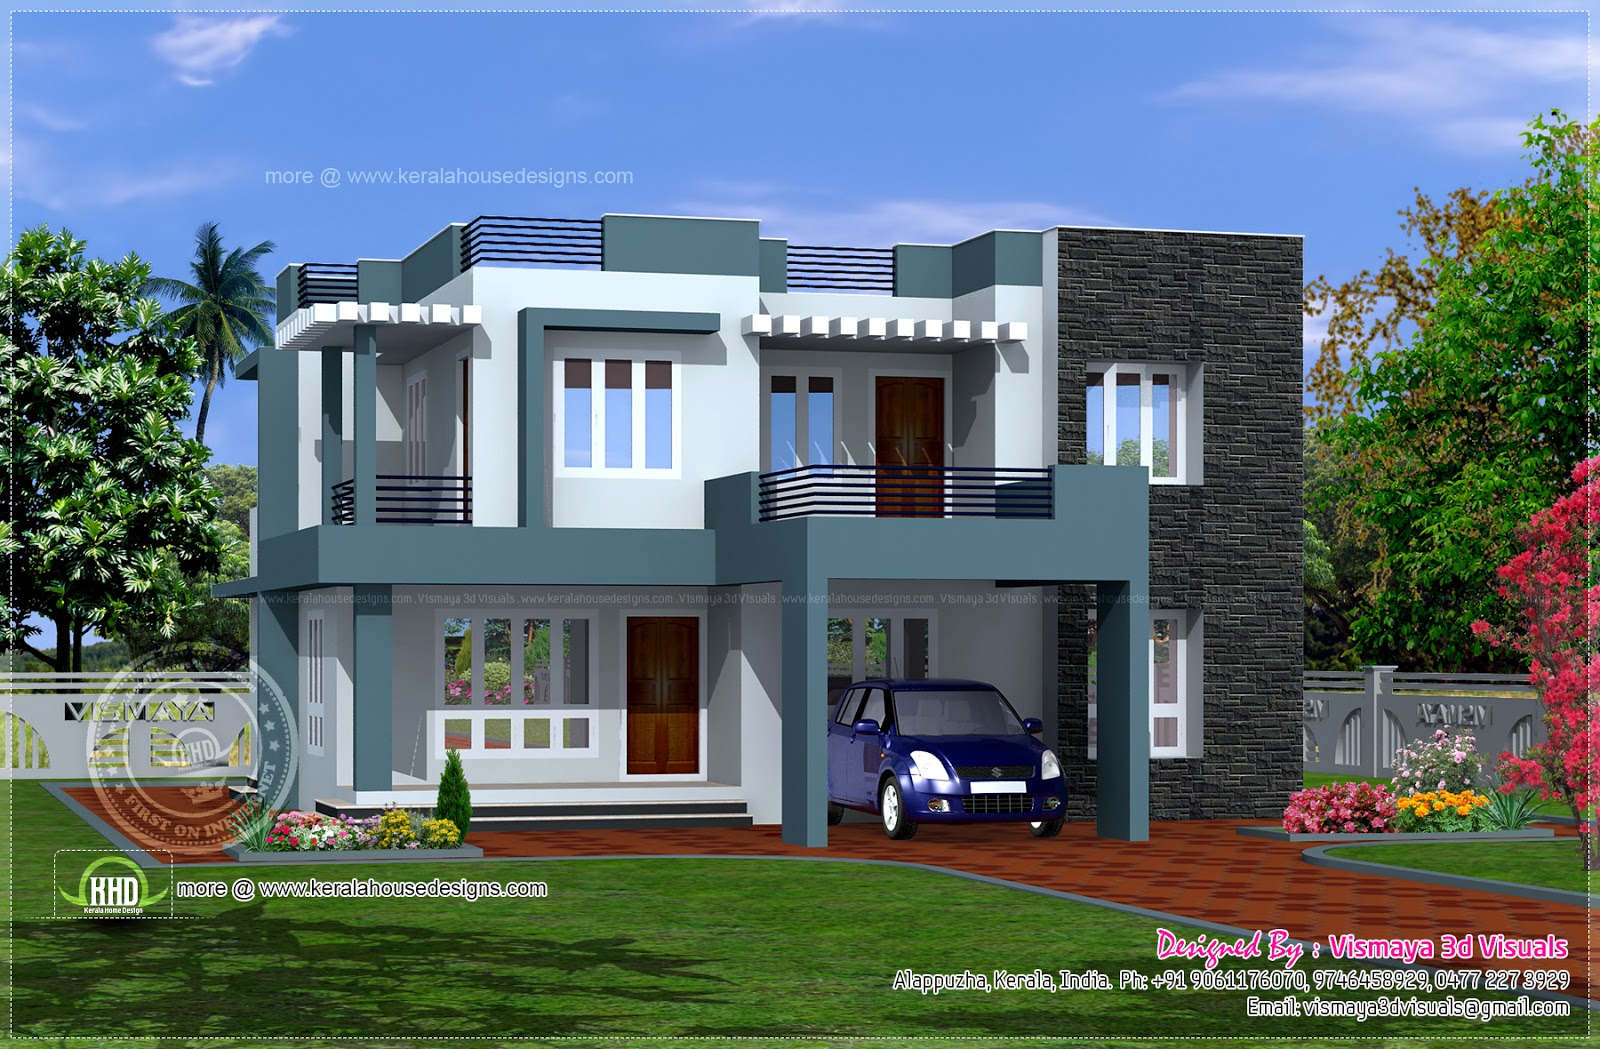 Simple contemporary style villa plan kerala home design for House plans with photos in kerala style